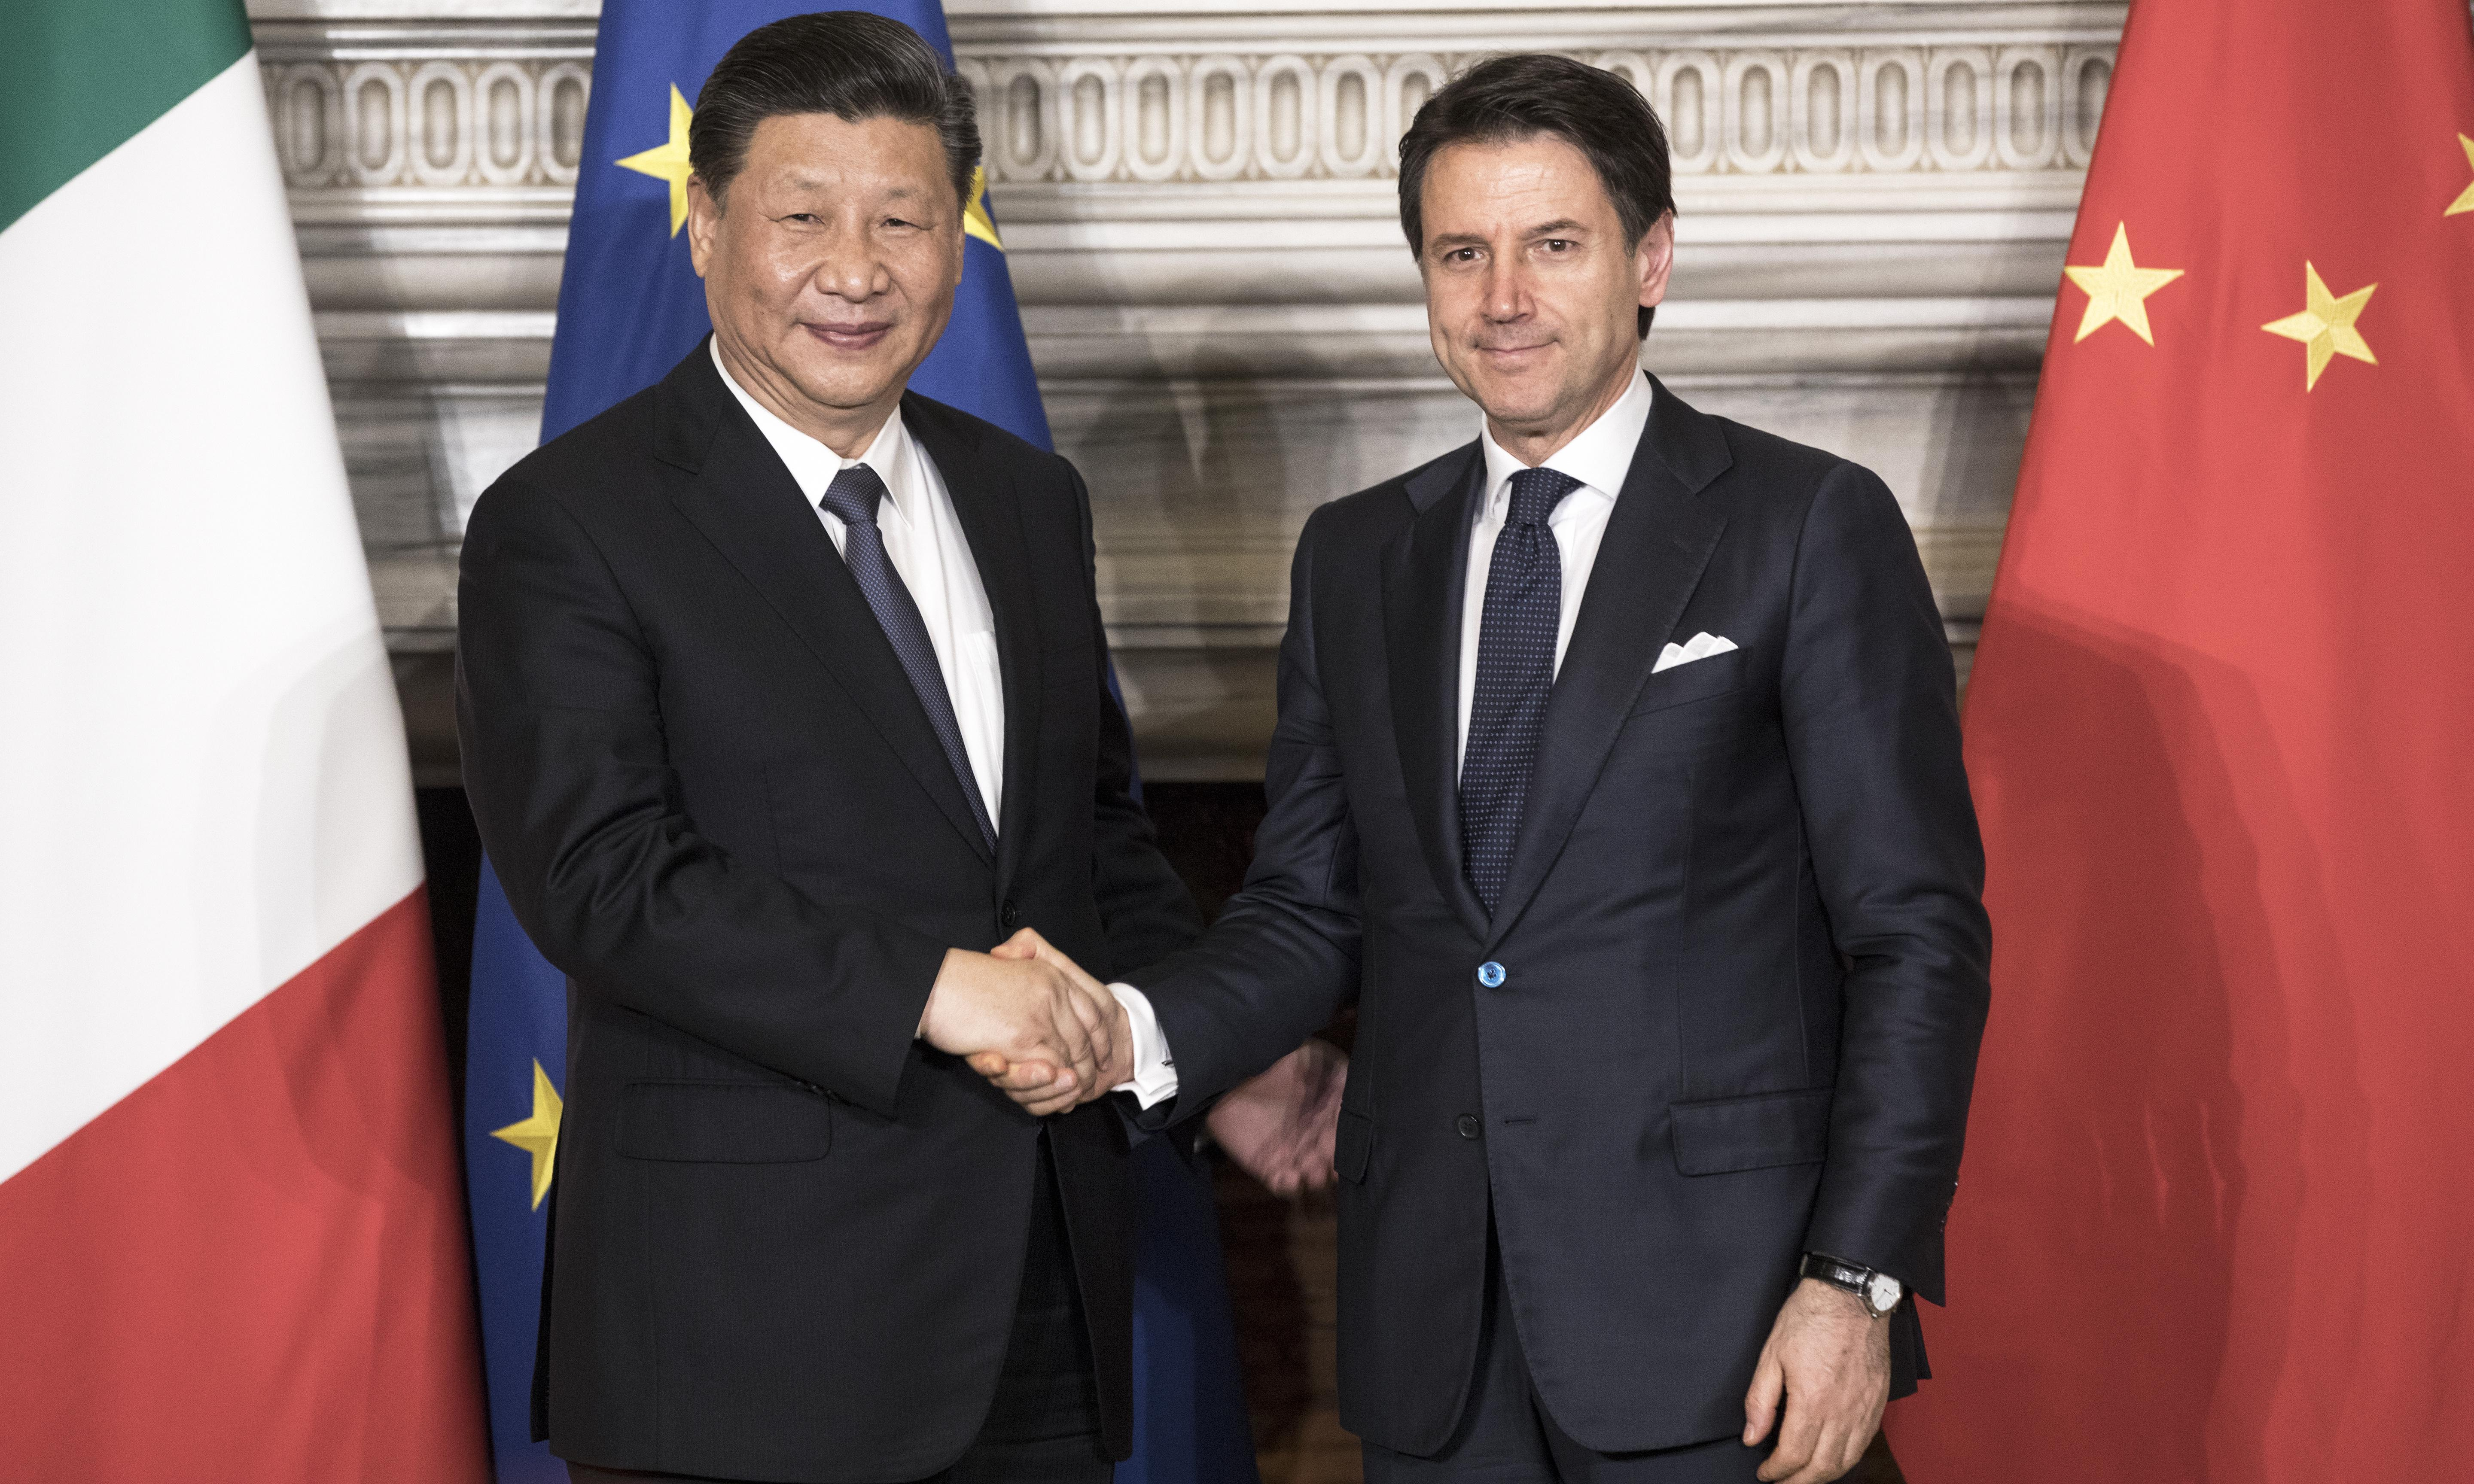 Italy and China in plan for new Silk Road-style trade network